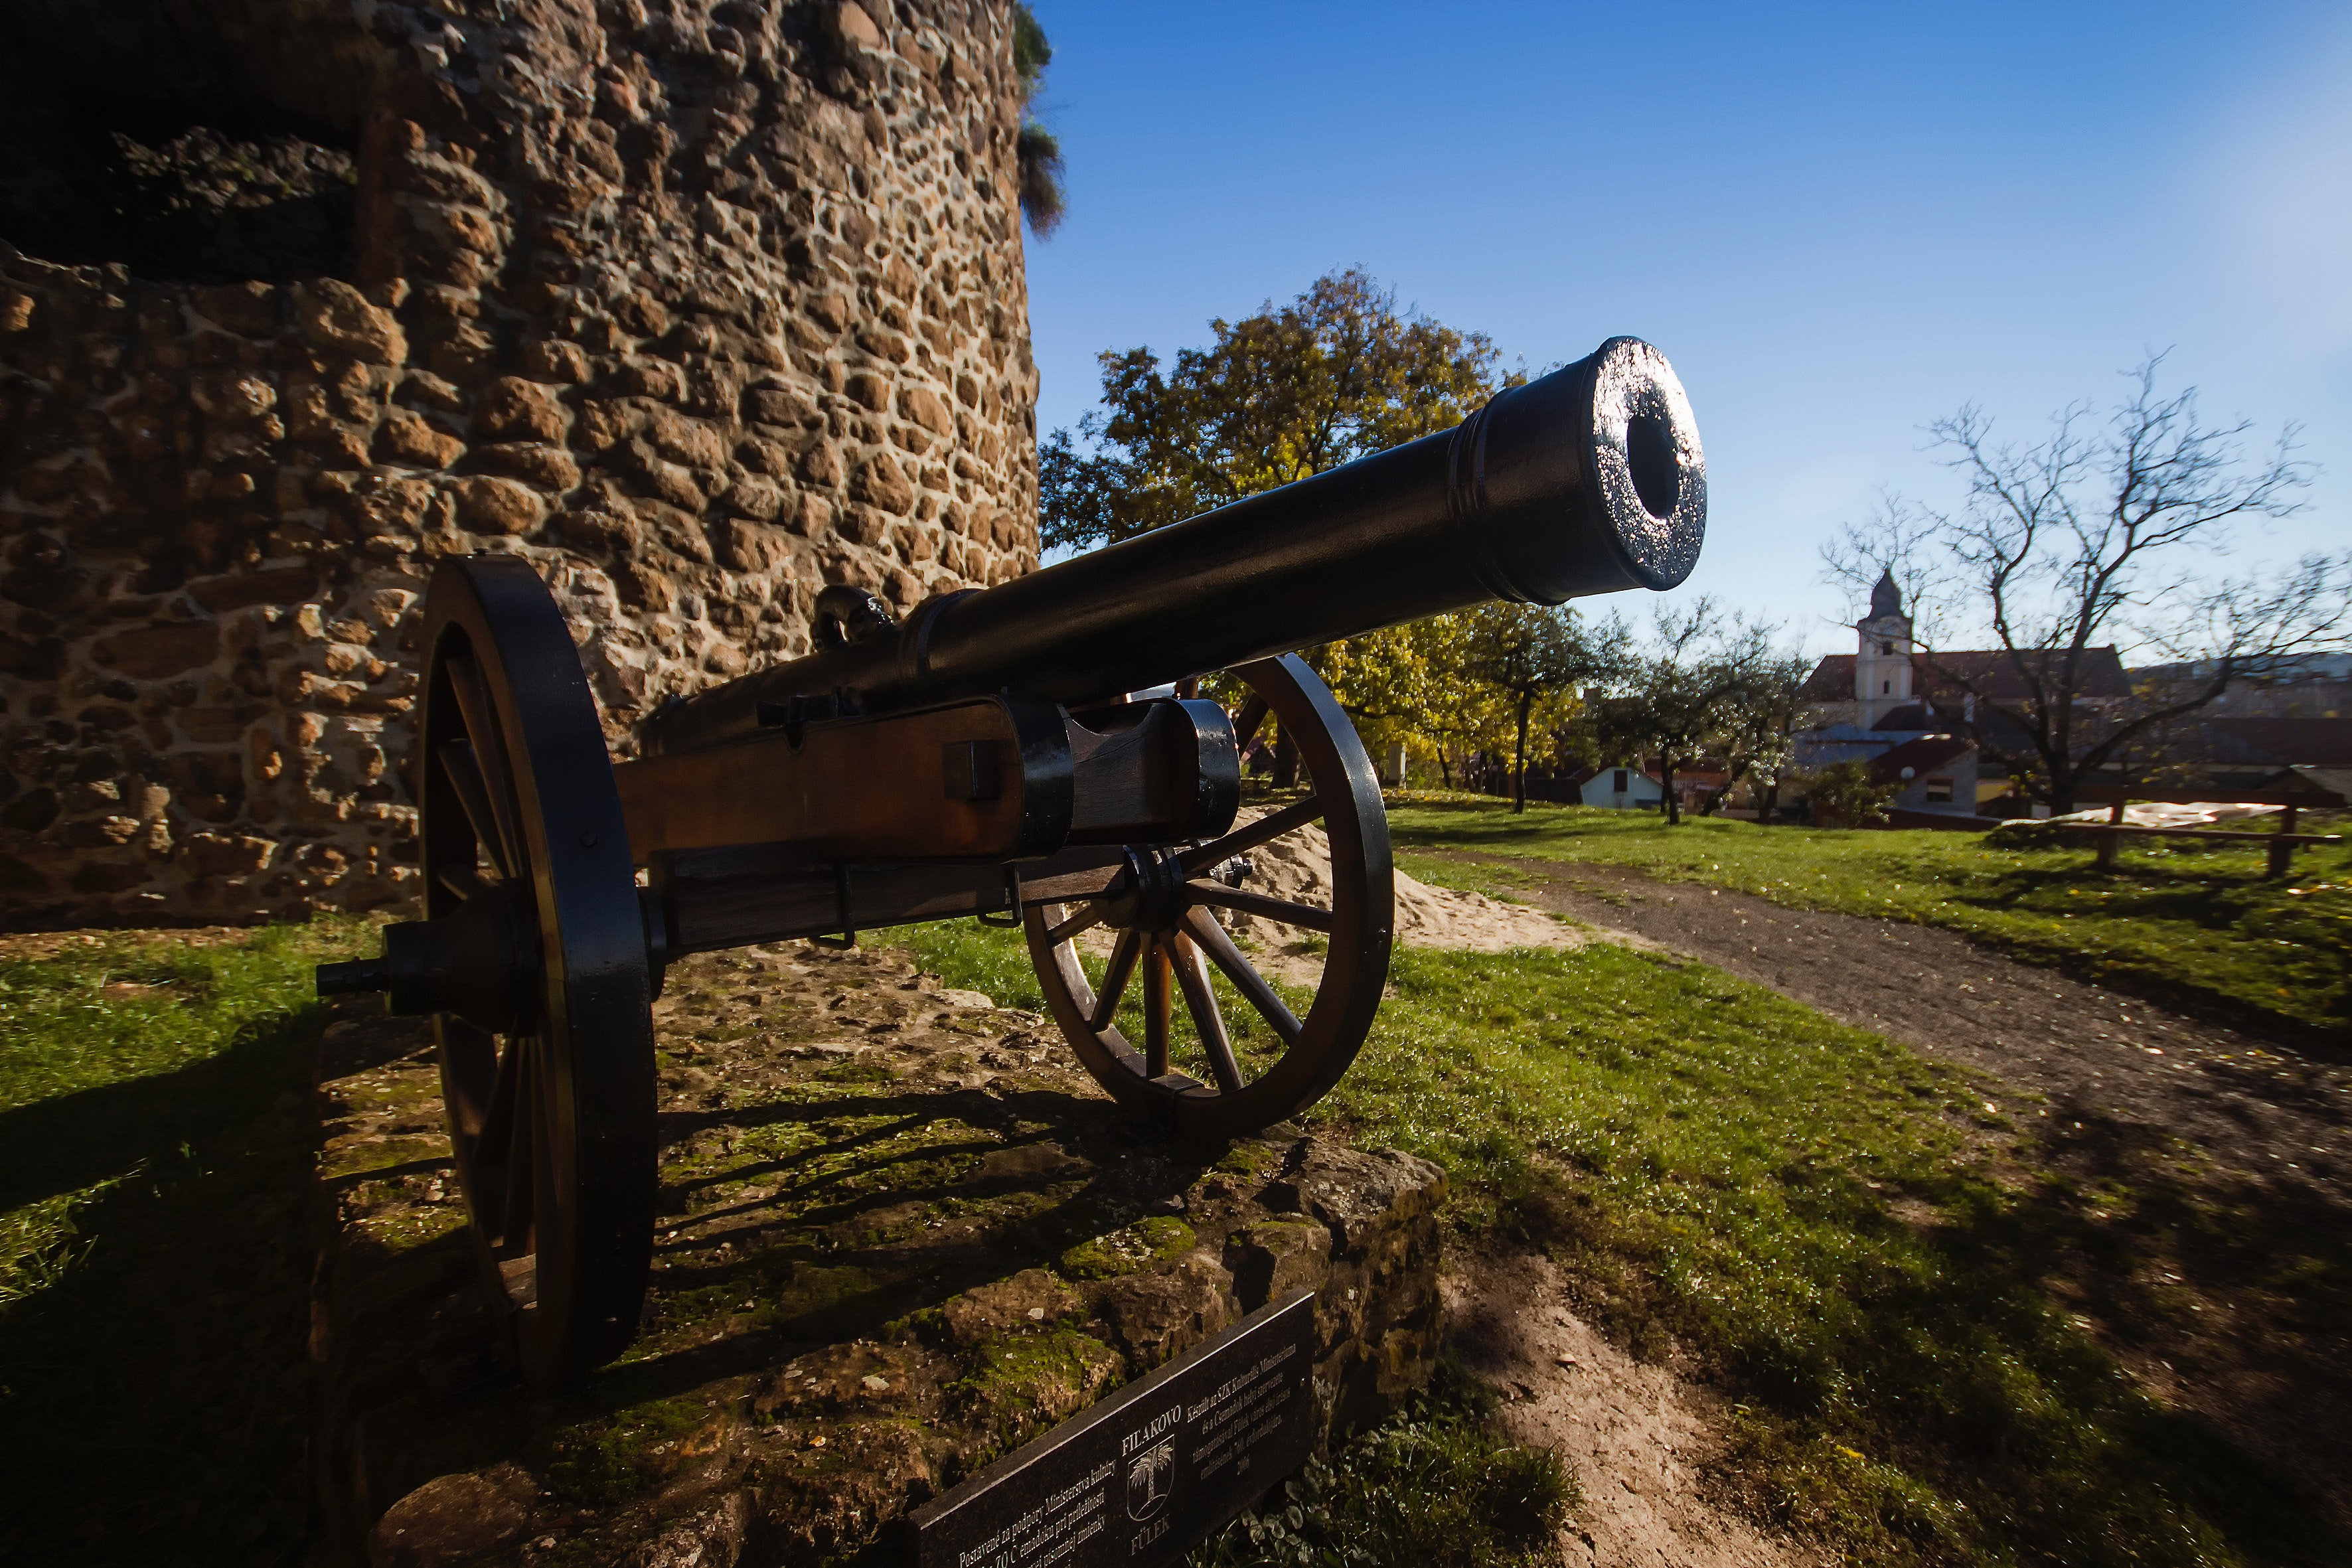 Black Cannon in Front of the Brick Wall Building, Outdoors, Military, Park, Landscape, HQ Photo